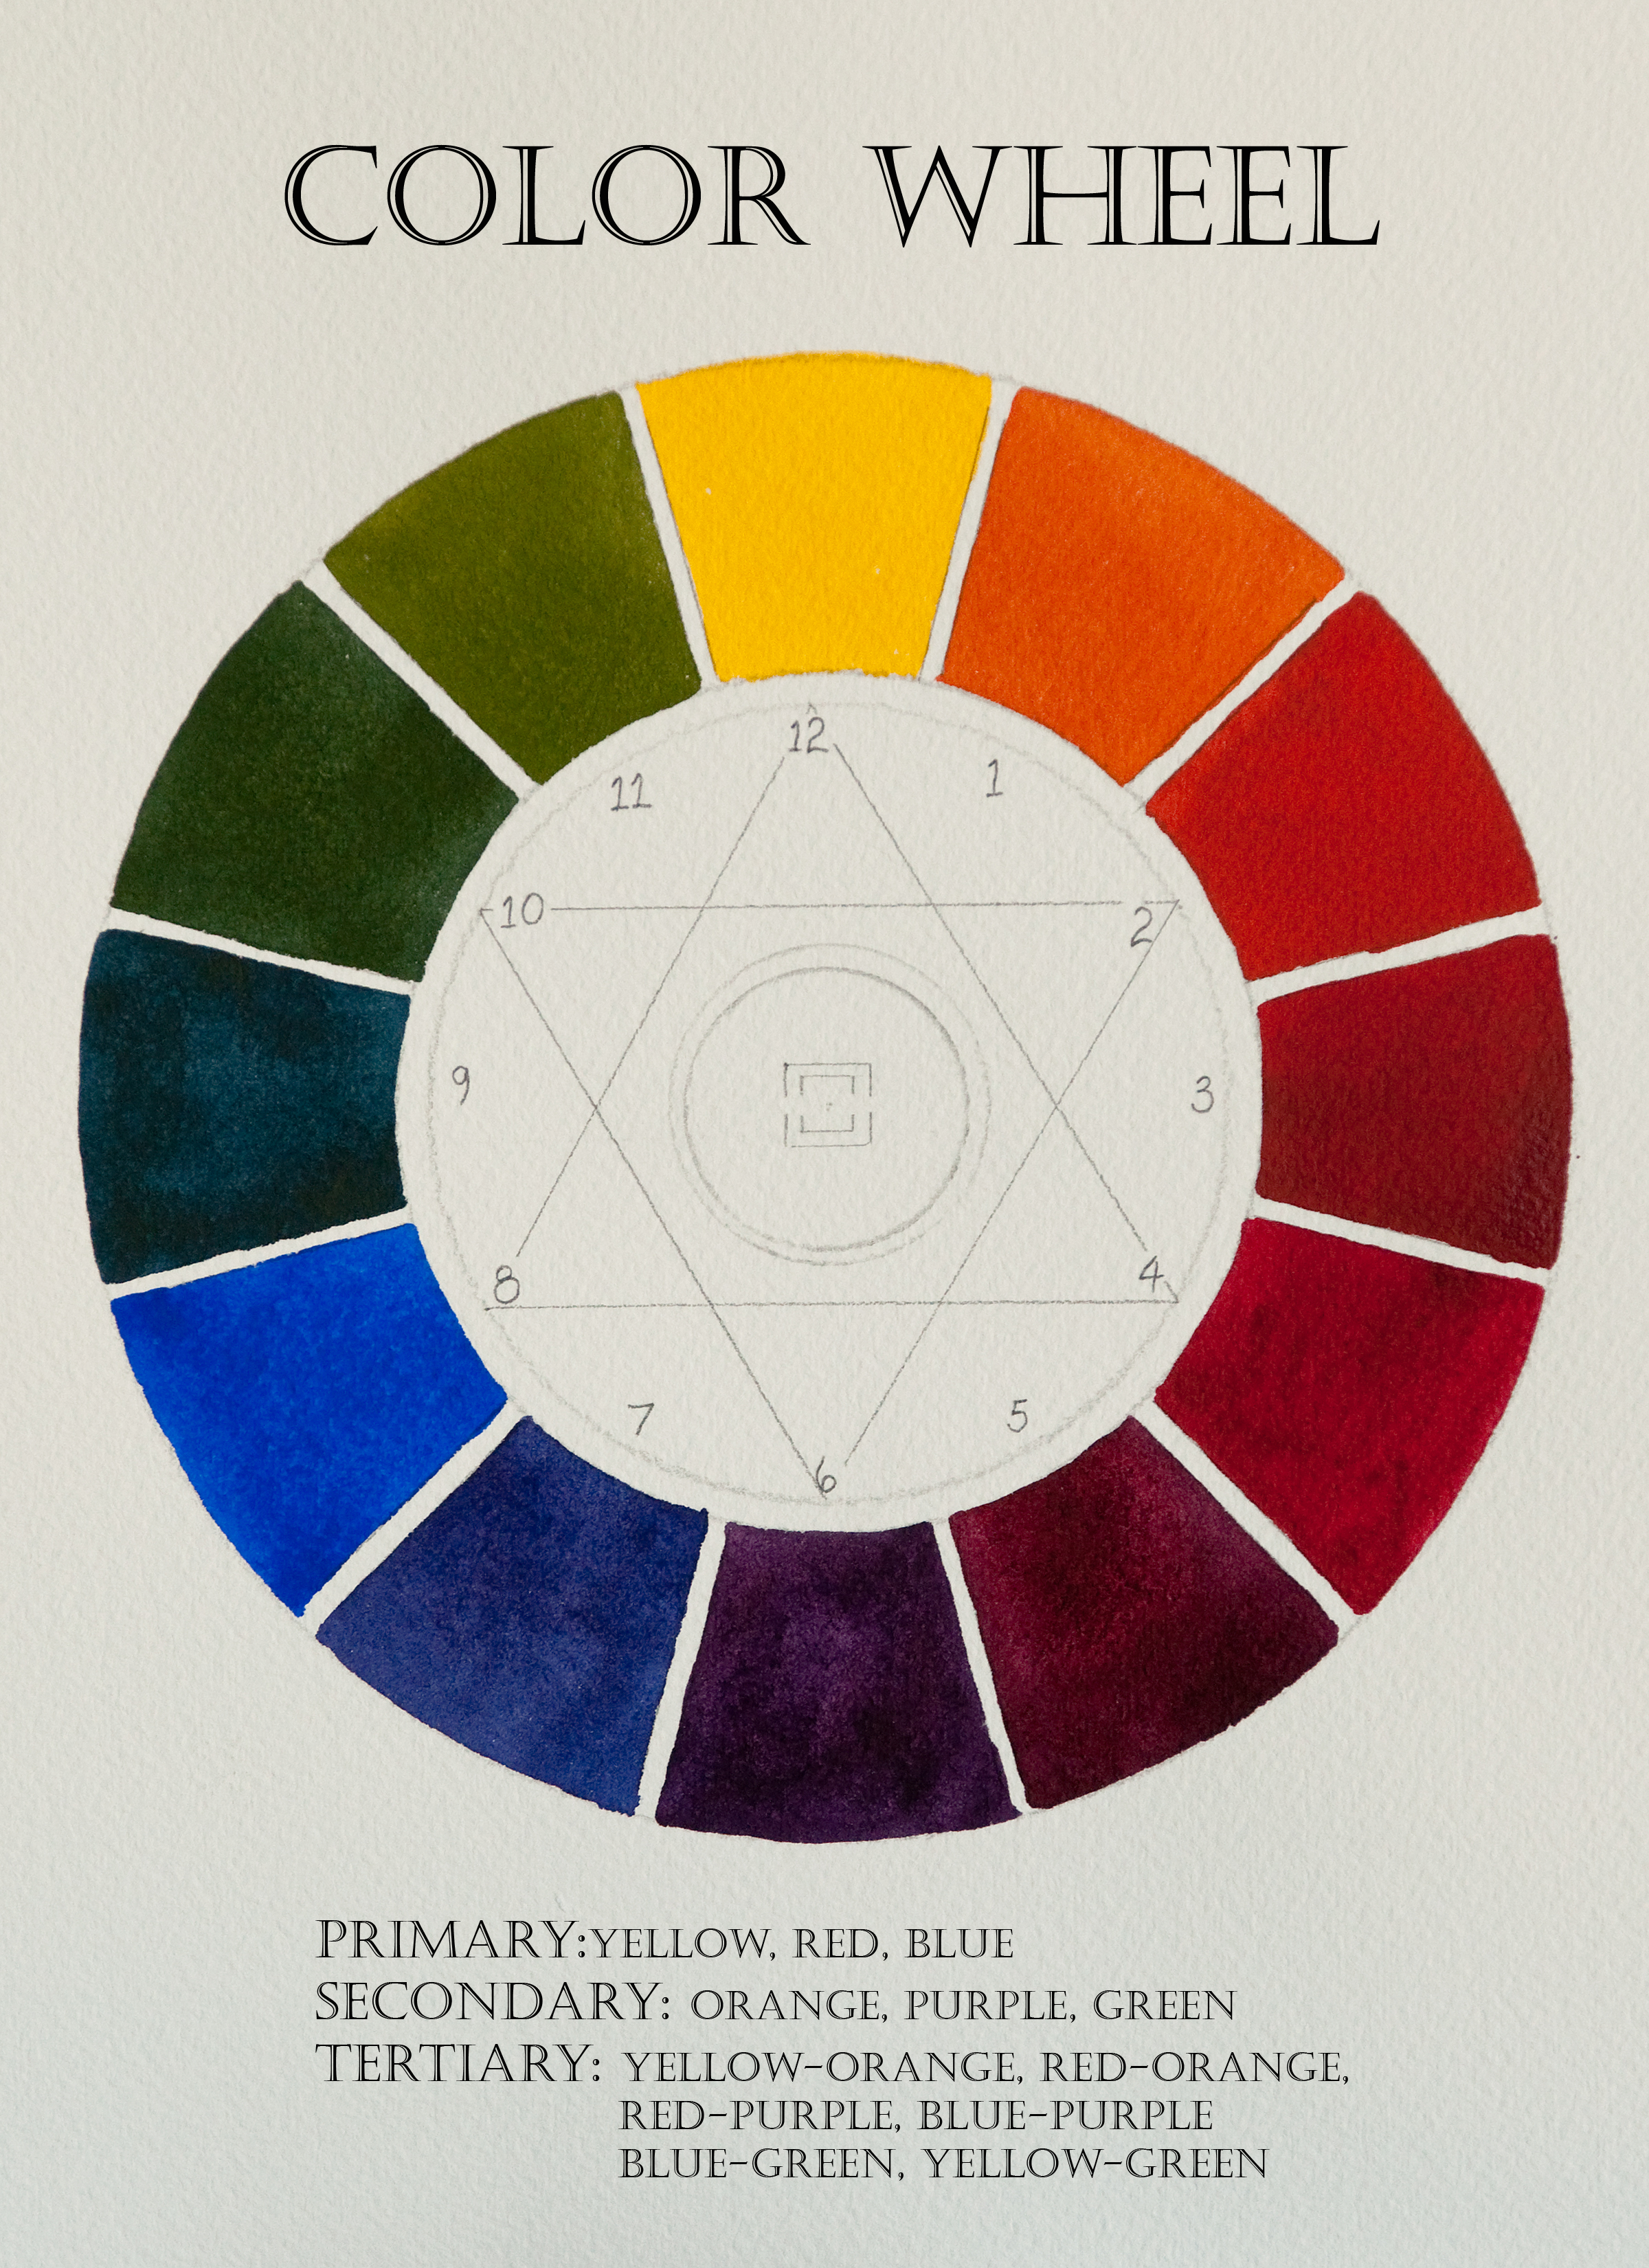 The Importance Of The Color Wheel